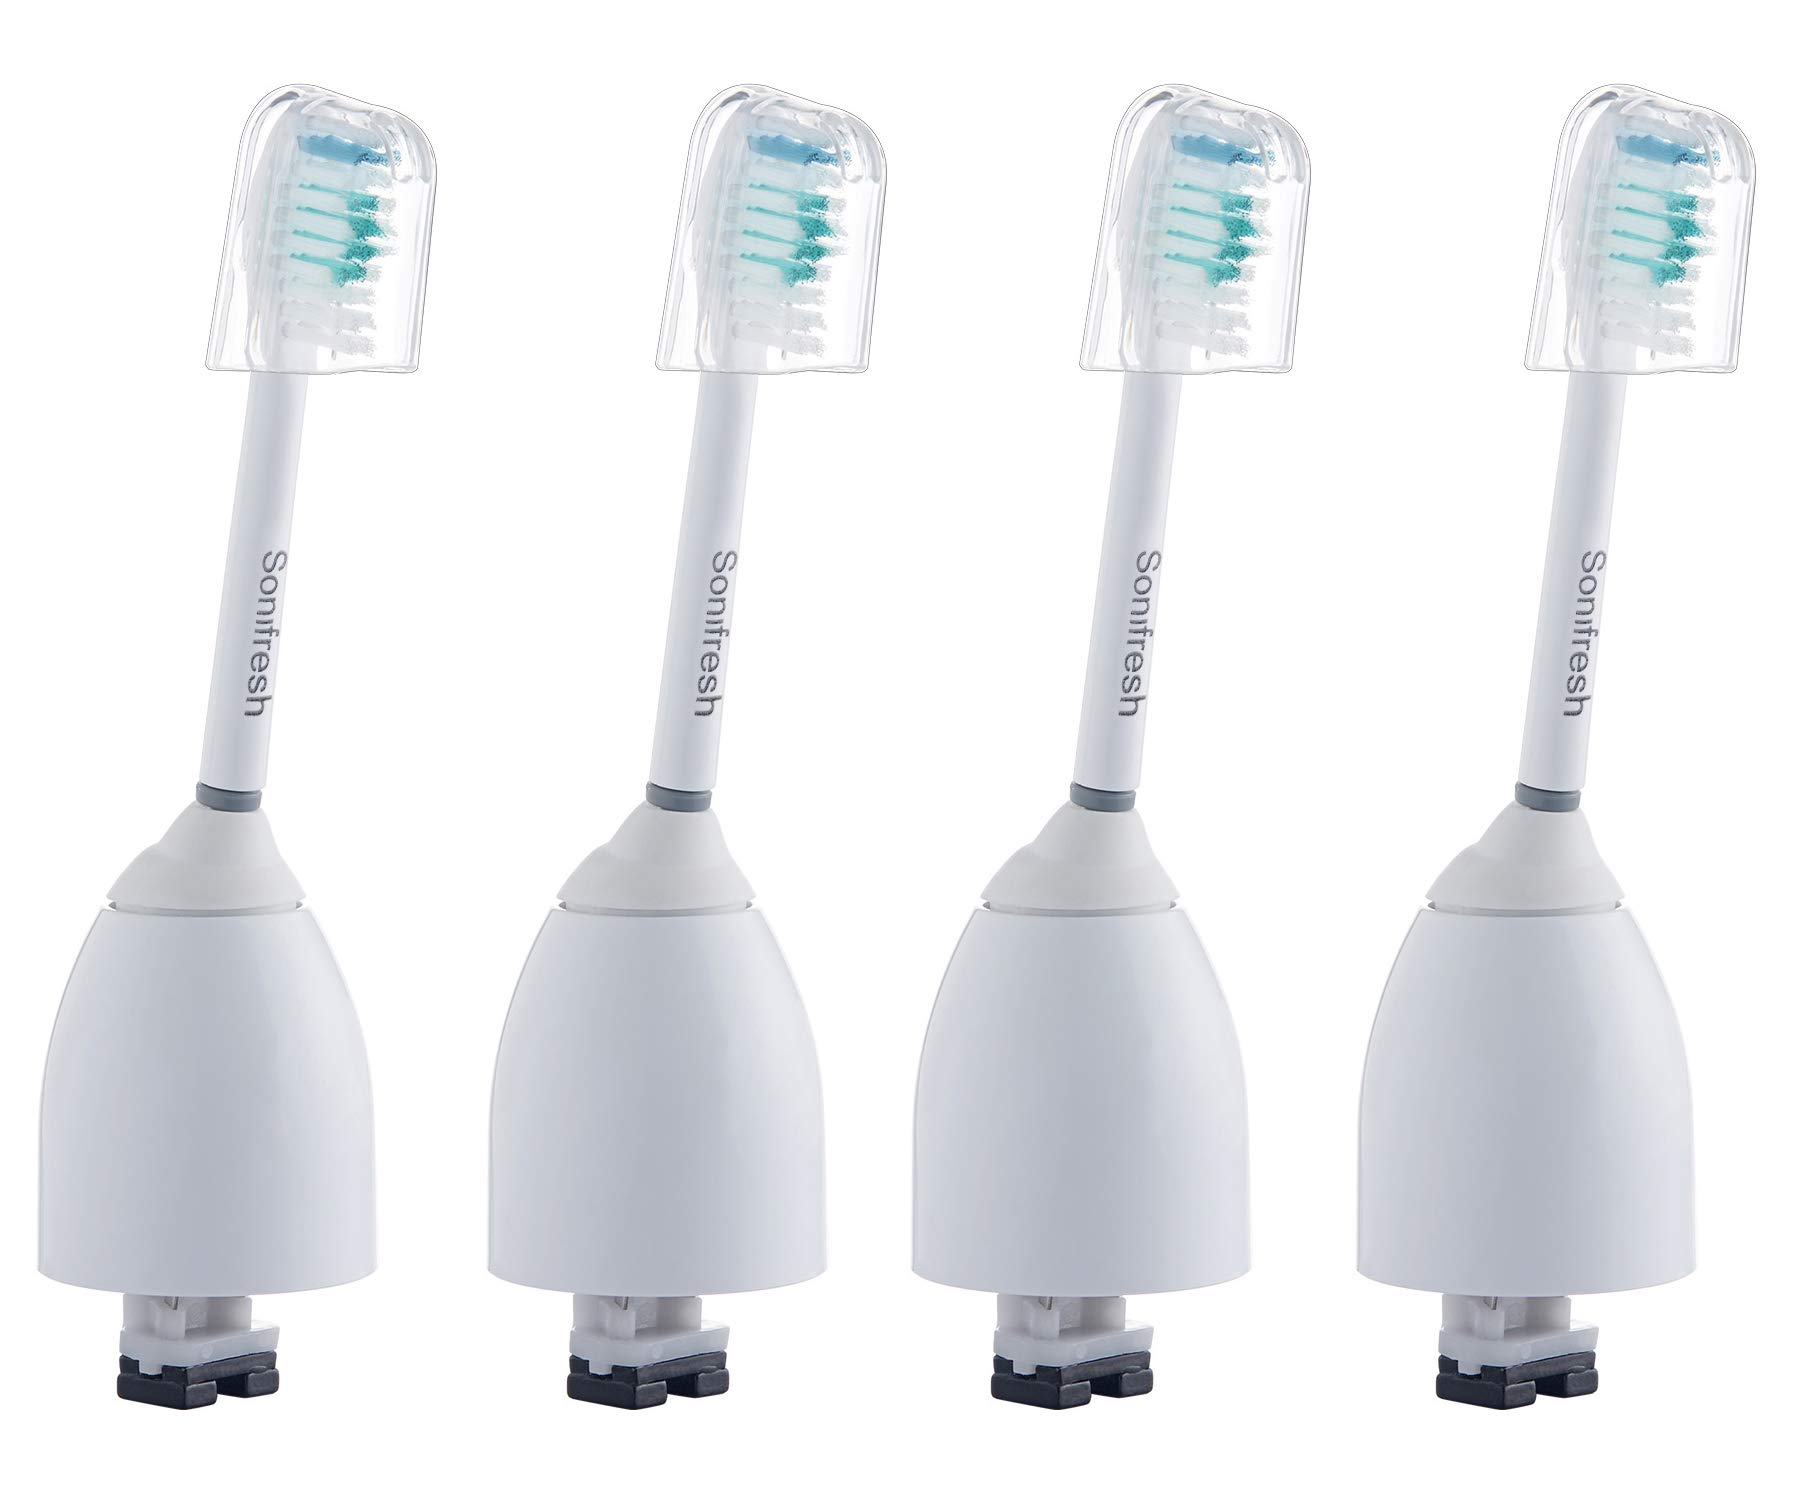 Sonifresh Replacement Brush Heads - Toothbrush Heads Compatible with Philips Sonicare e series,essence,elite,Advance HX7001,4 Pack by Sonifresh